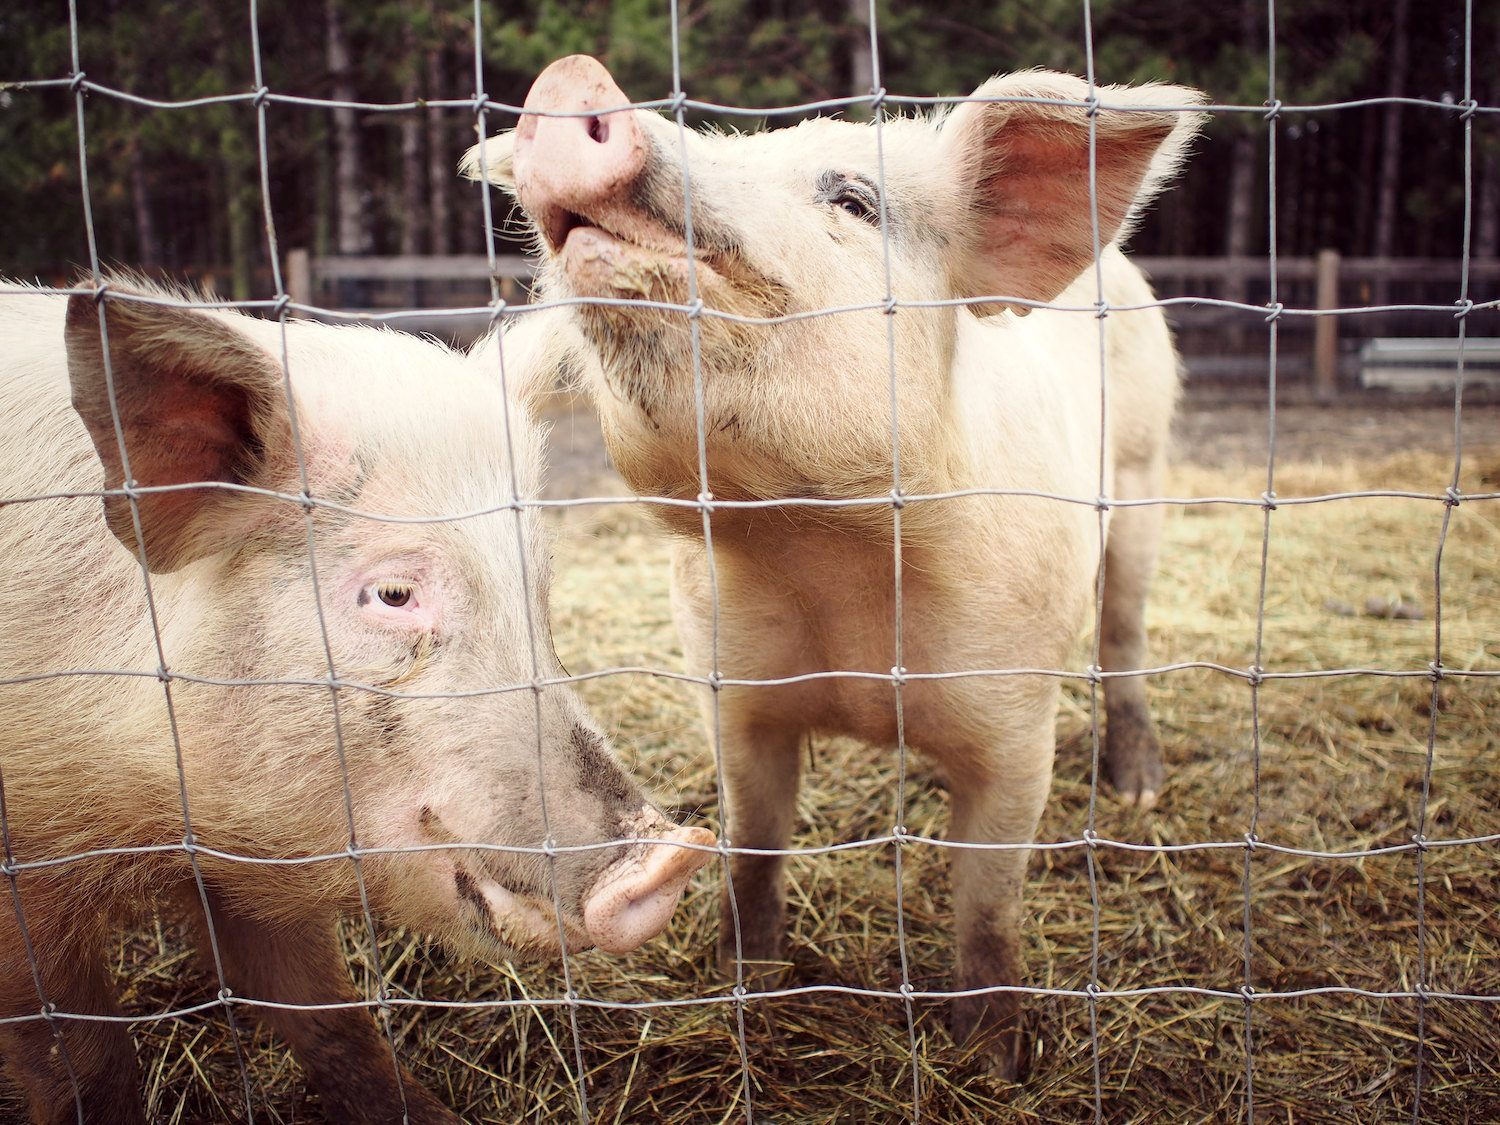 Two pink pigs behind fence in hay. Sept 2021